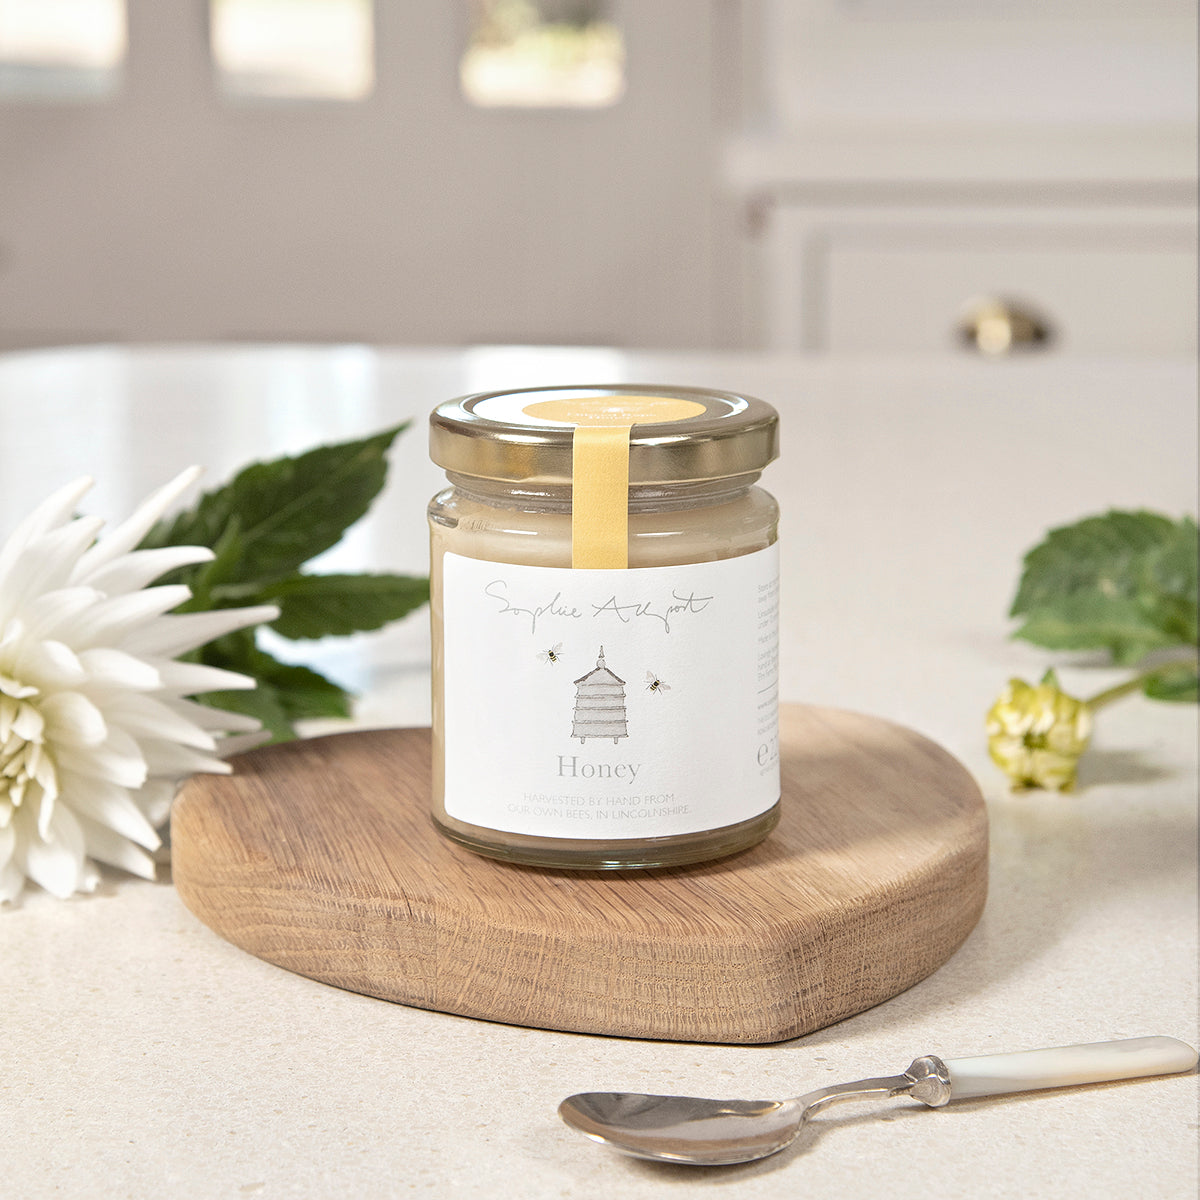 Oilseed Rape British Honey by Sophie Allport